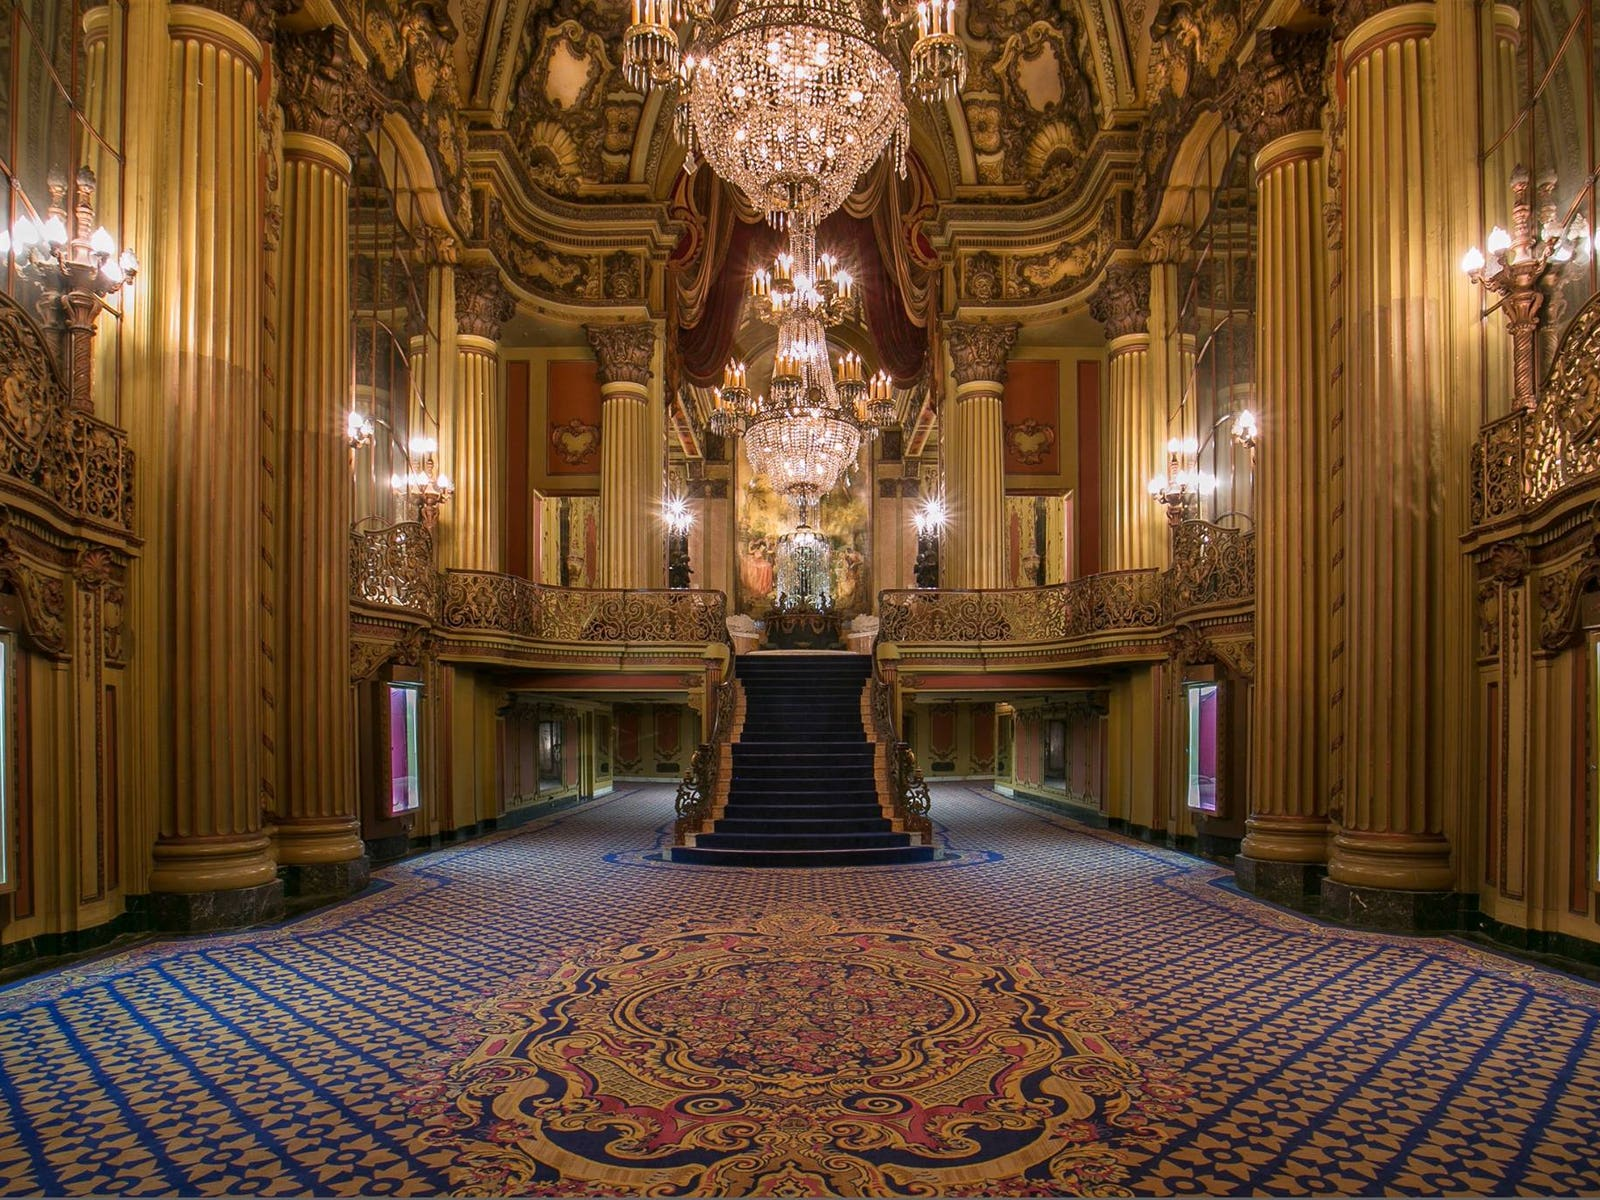 Lobby of the Los Angeles Theatre in DTLA